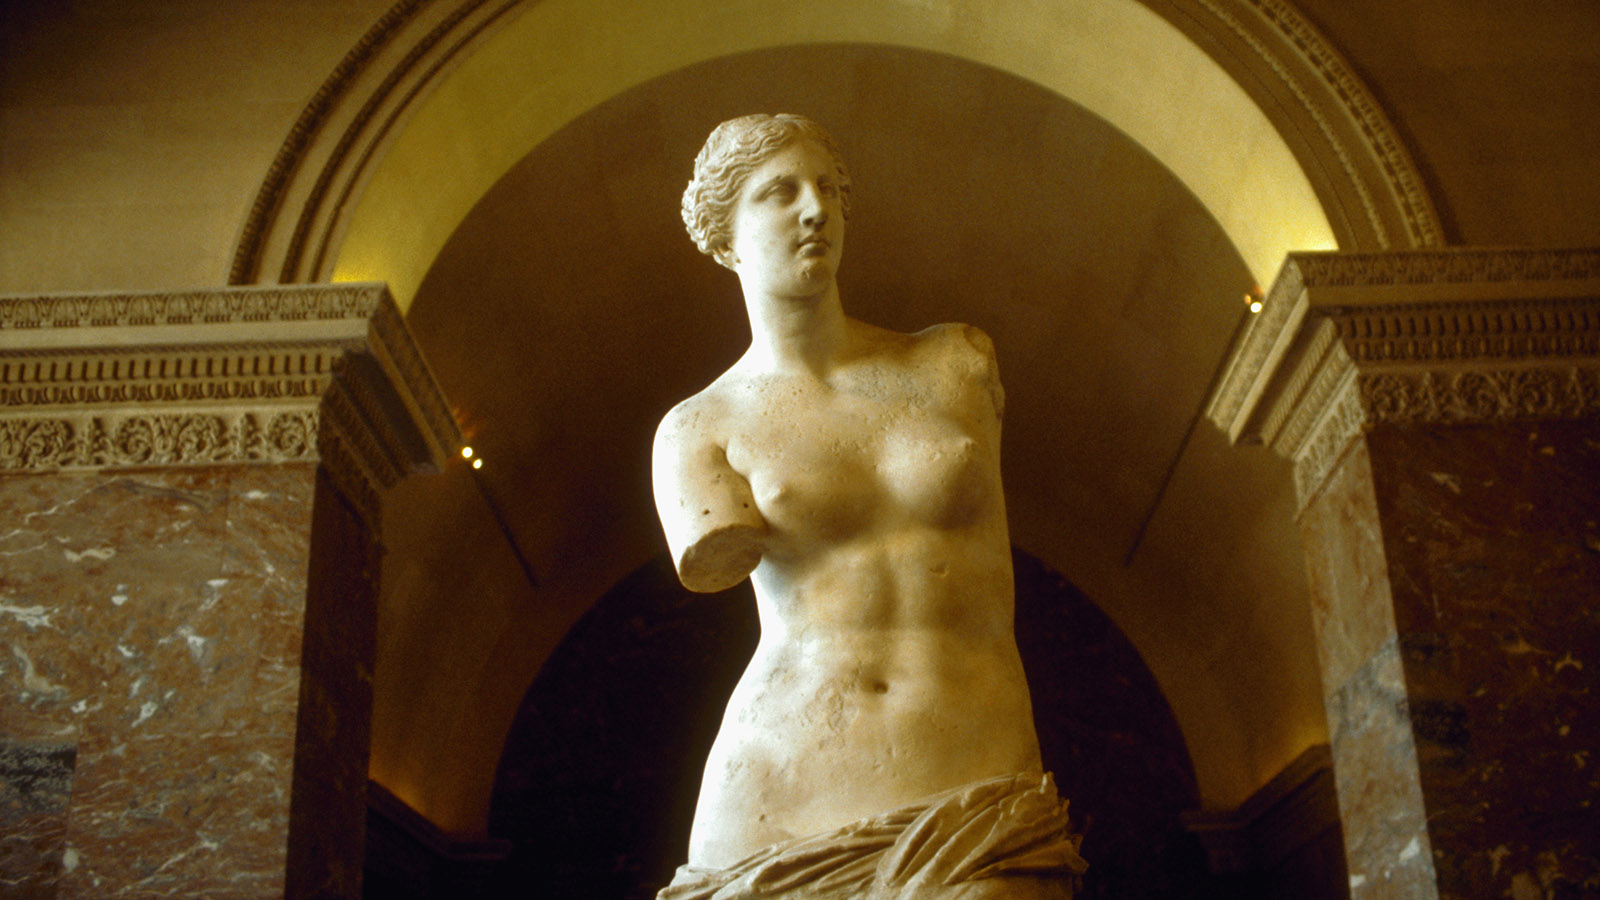 Venus de Milo: The Most Famous Armless Statue in the World